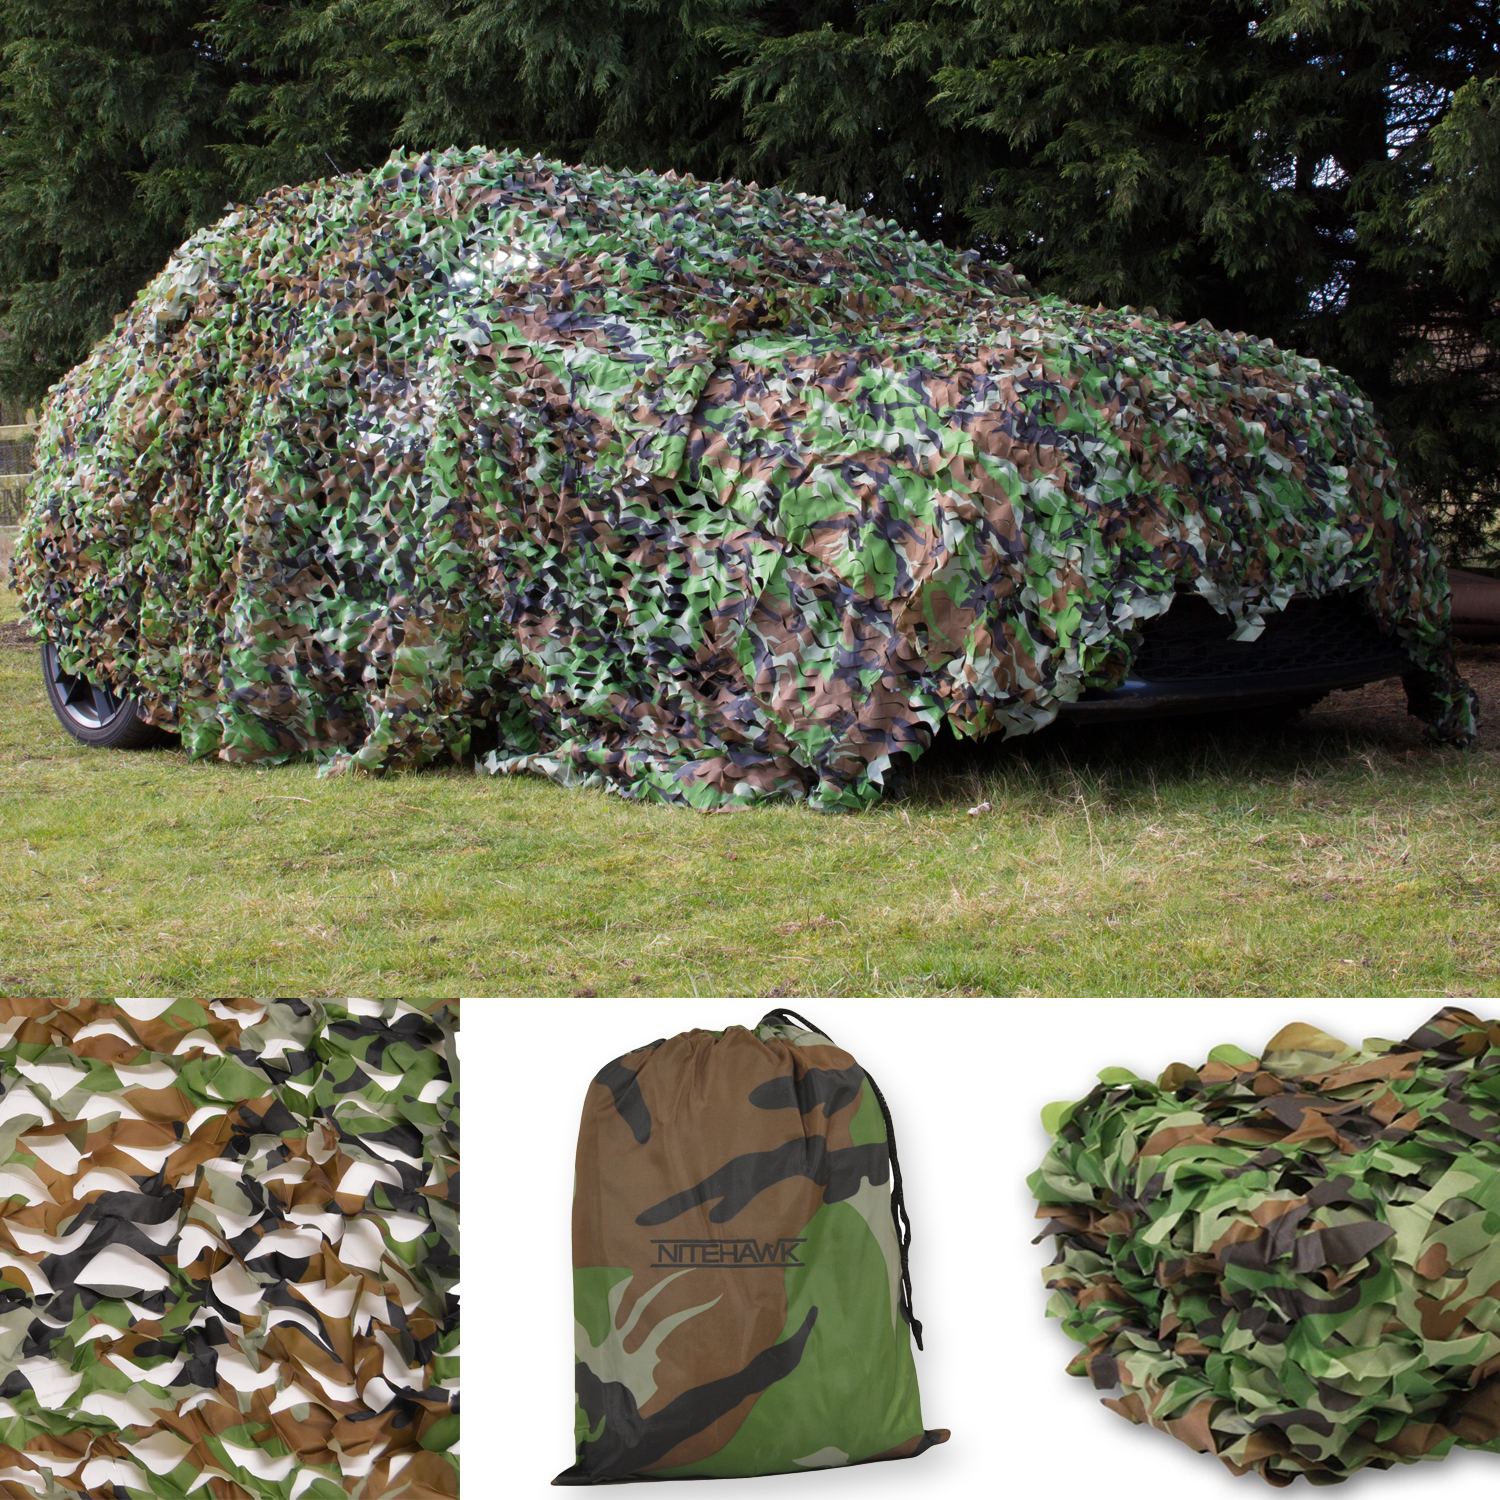 Nitehawk Camouflage Net With Carry Bag Camouflage